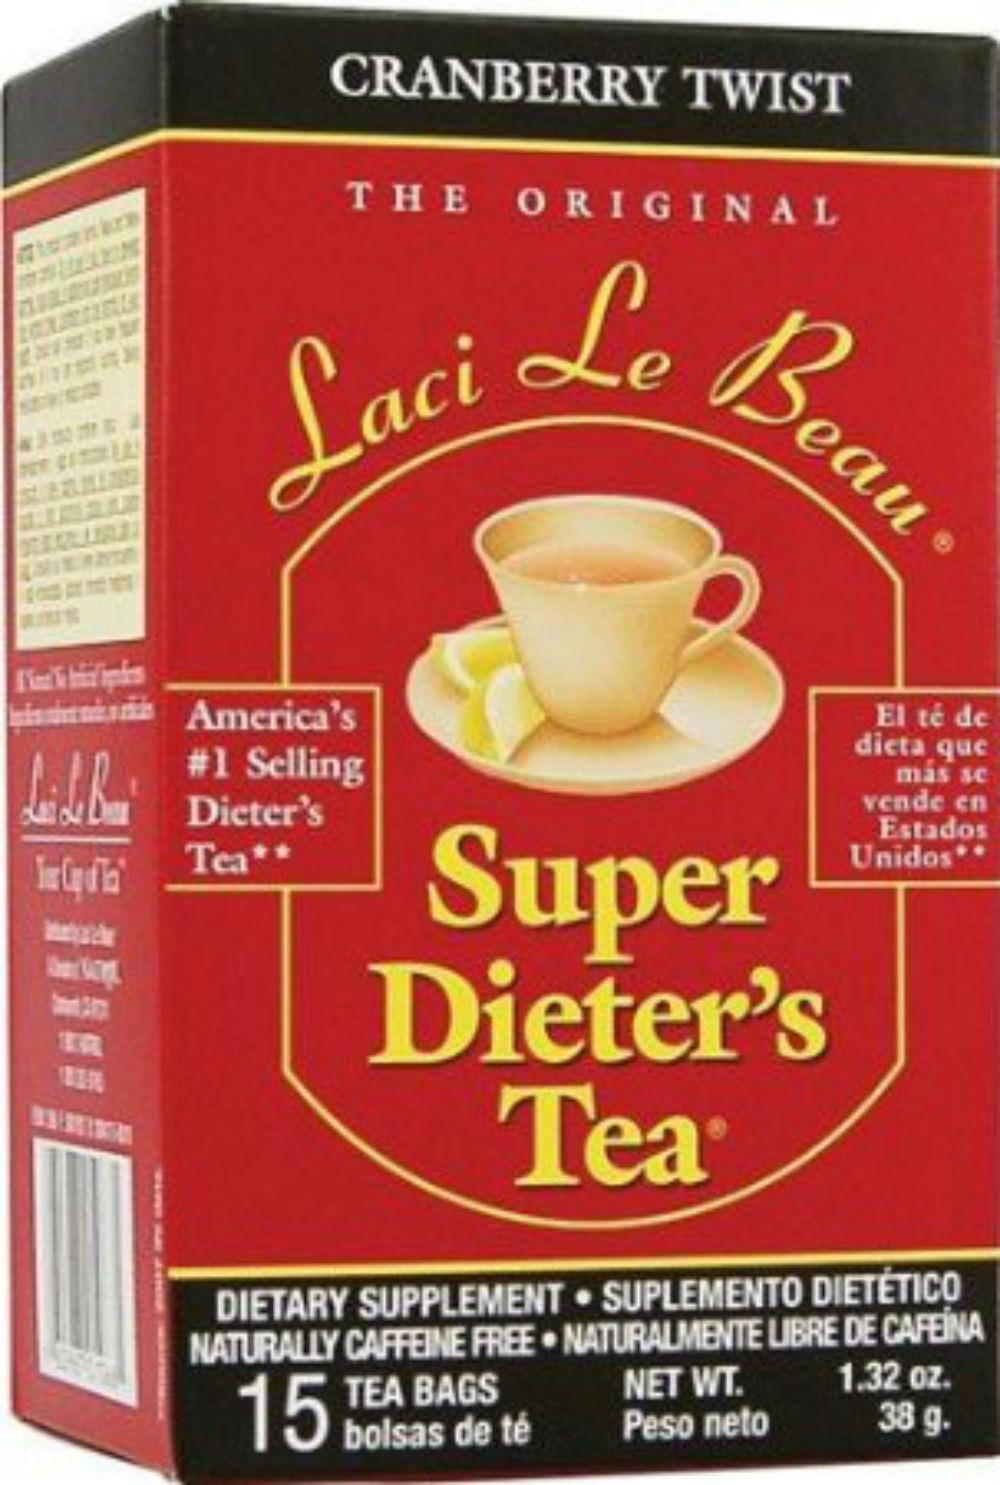 Laci Le Beau: Super Dieter's Tea Cranberry Twist 15 Tea Bags, 1.32 Oz